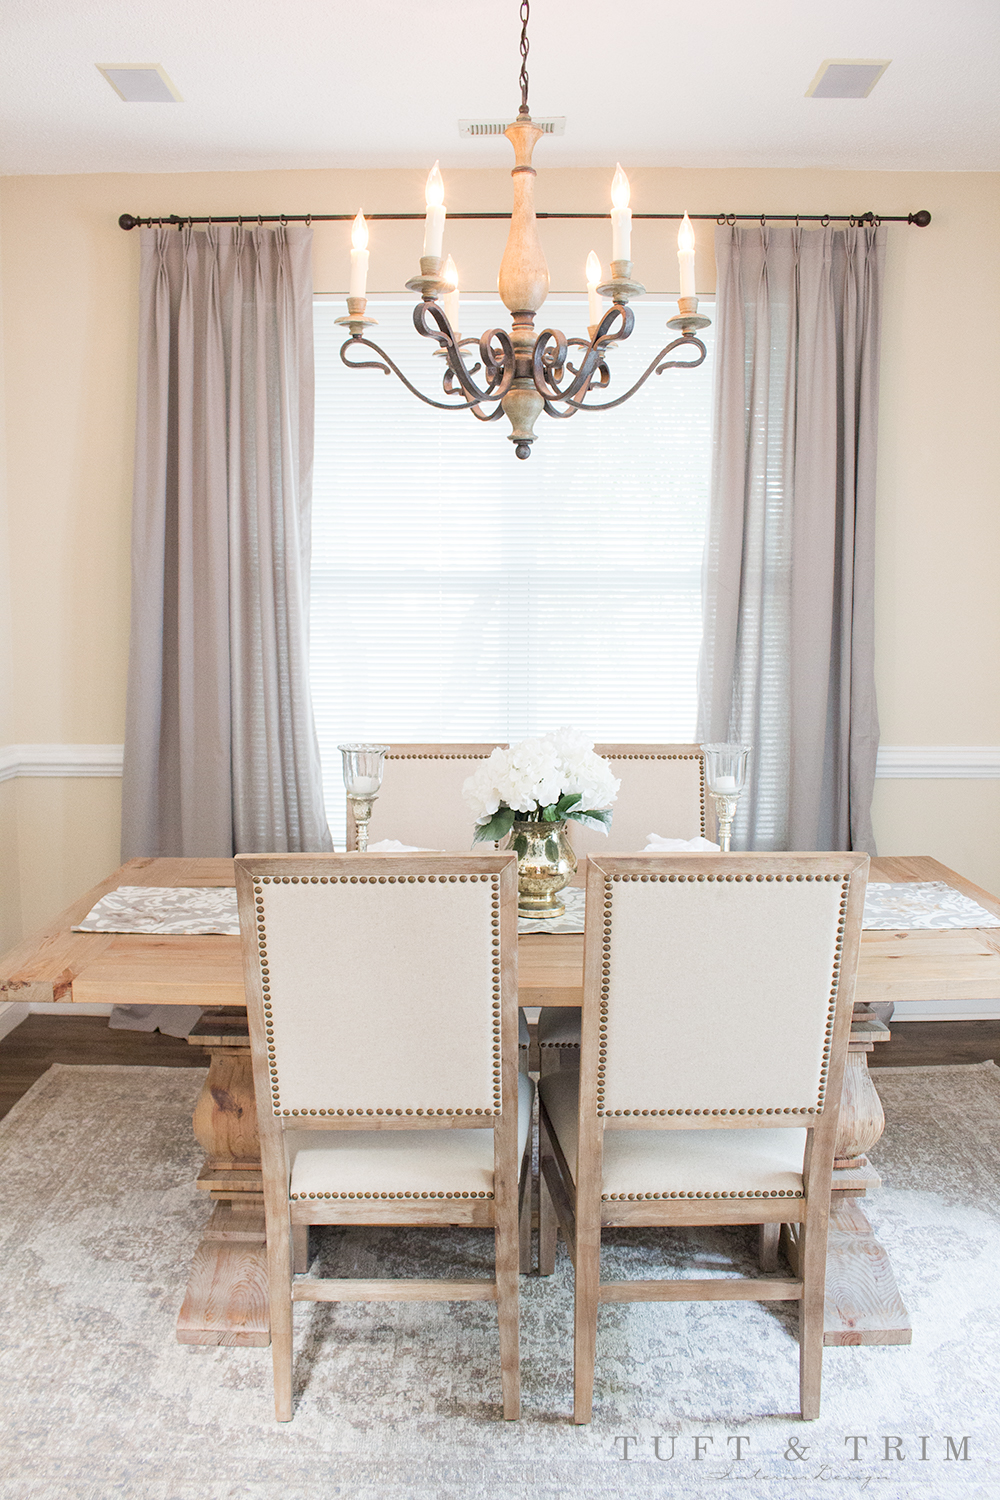 Before & After Dining Room: Rustic Elegance